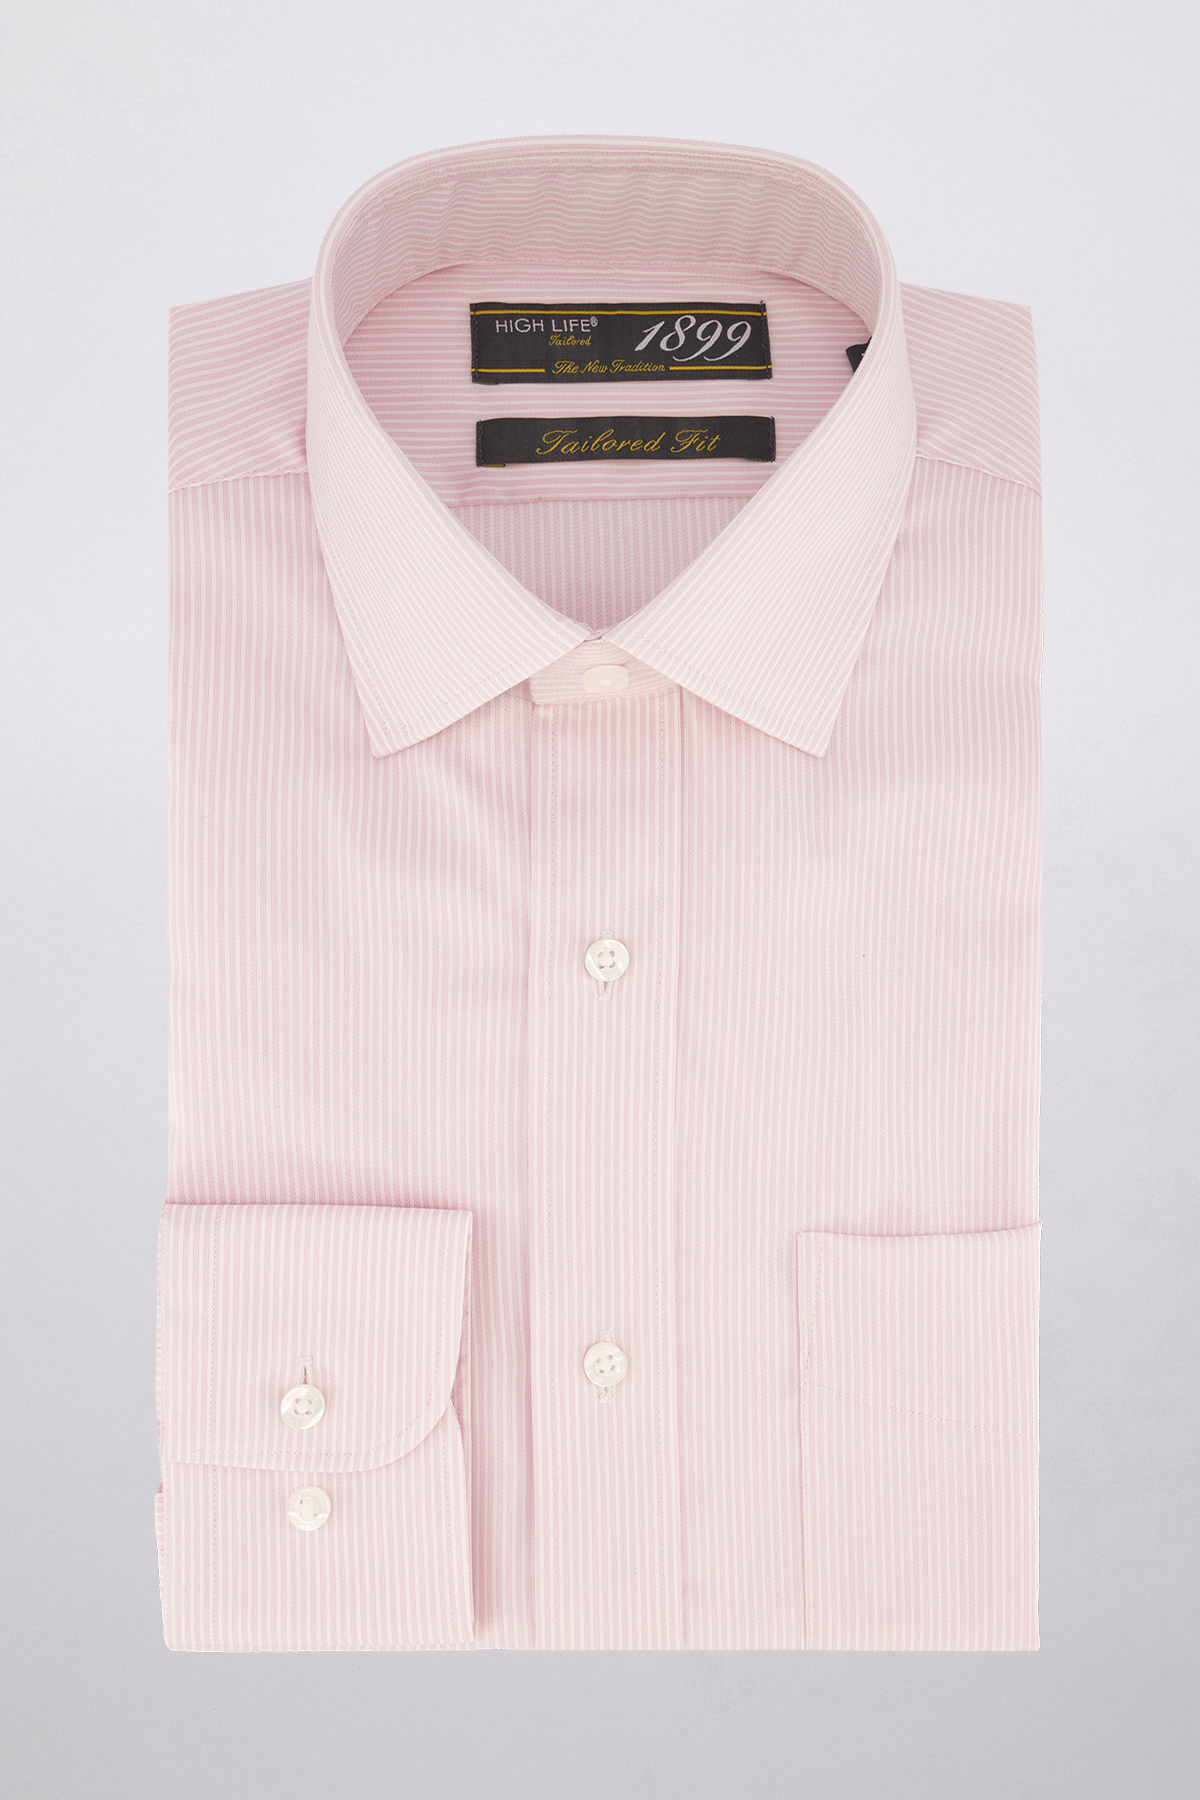 Camisa Vestir marca HIGH LIFE color Rosa